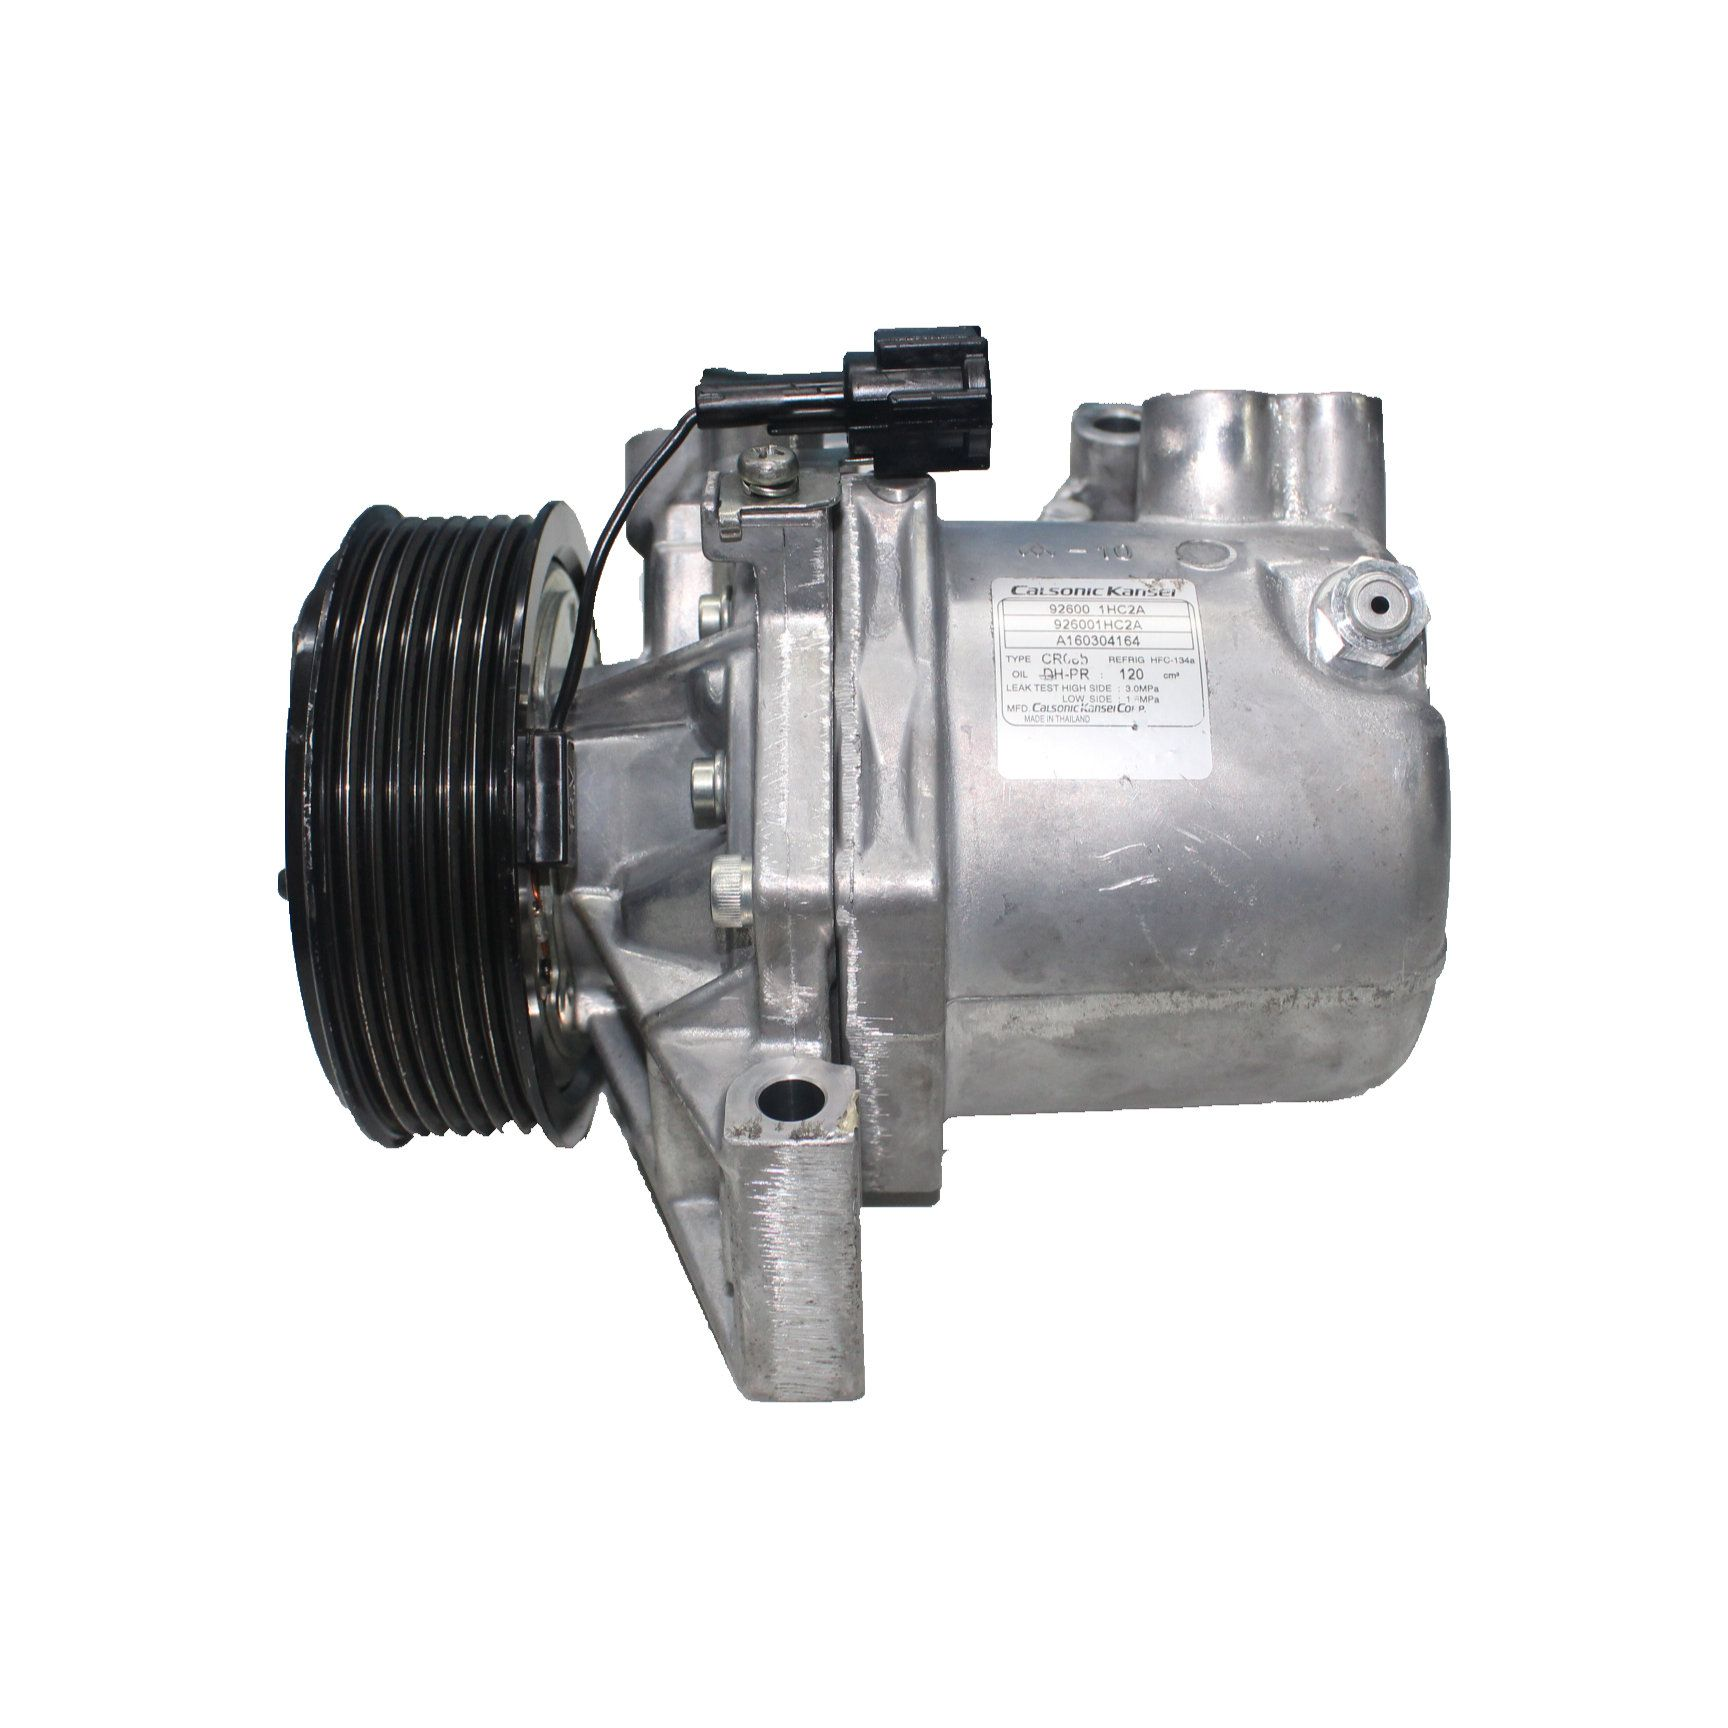 Compressor Ar Condicionado Calsonic March, Versa 1.0